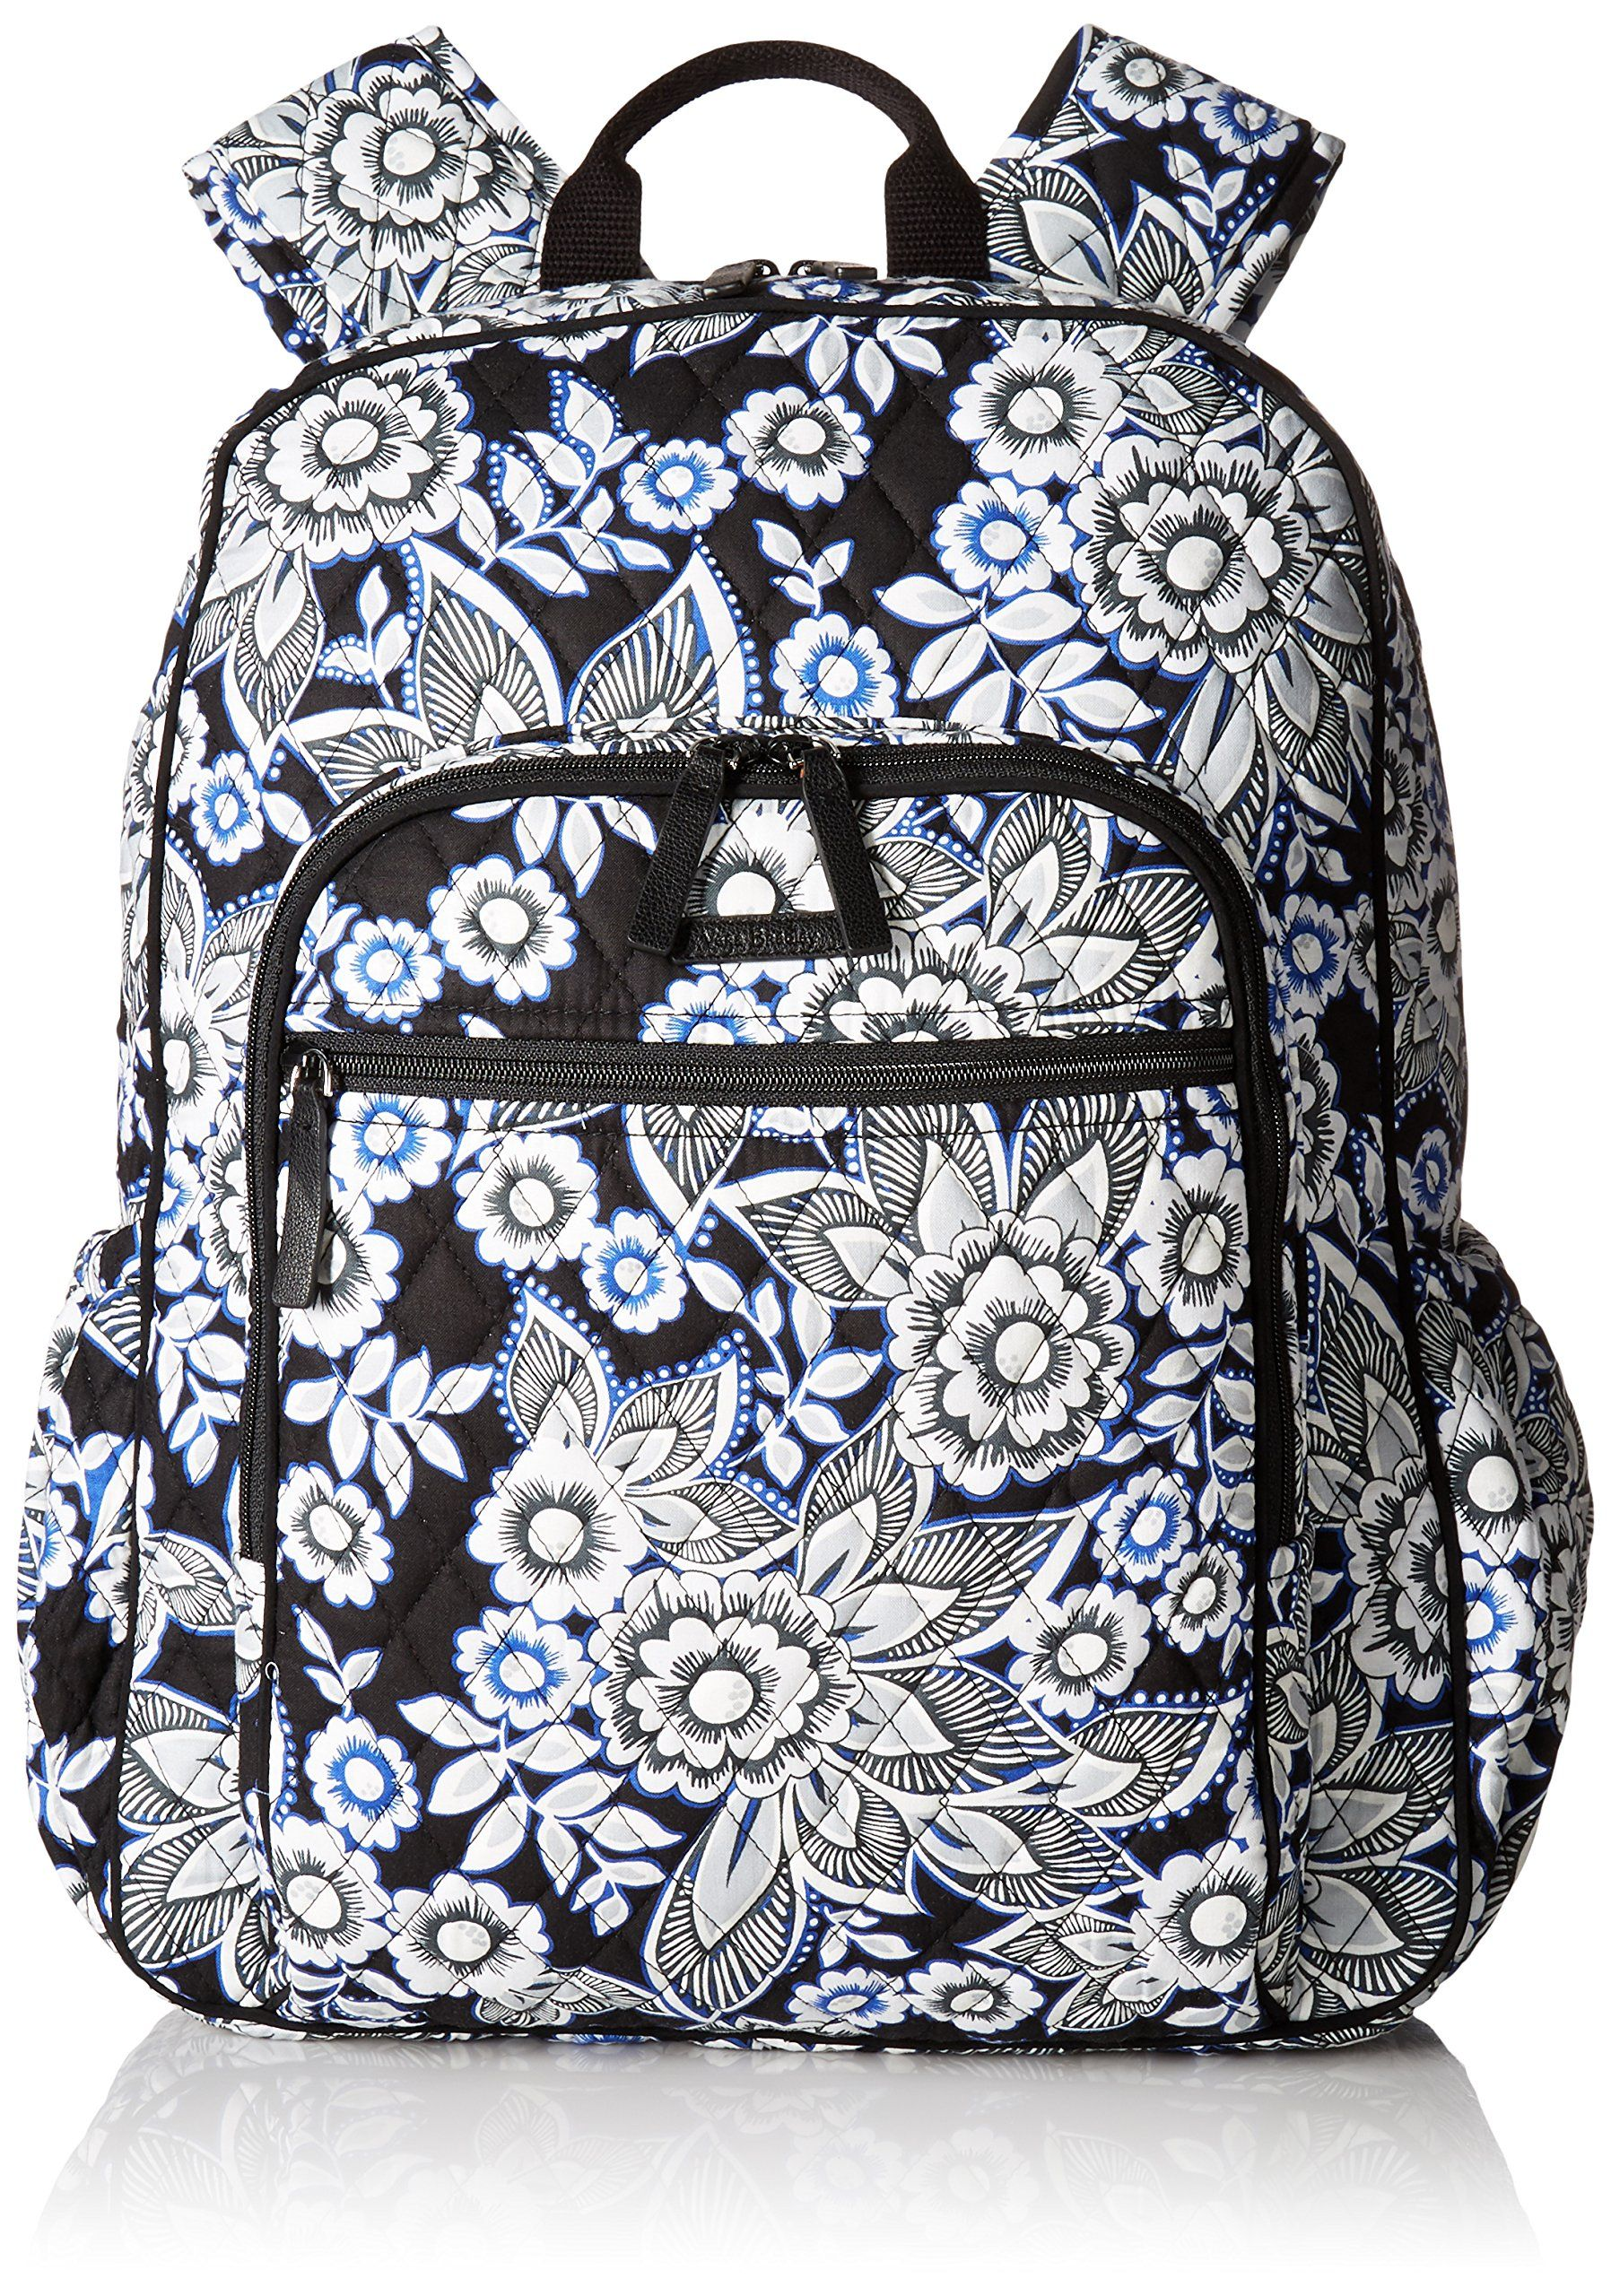 539fd9d9b0 Vera Bradley Women s Campus Tech Backpack